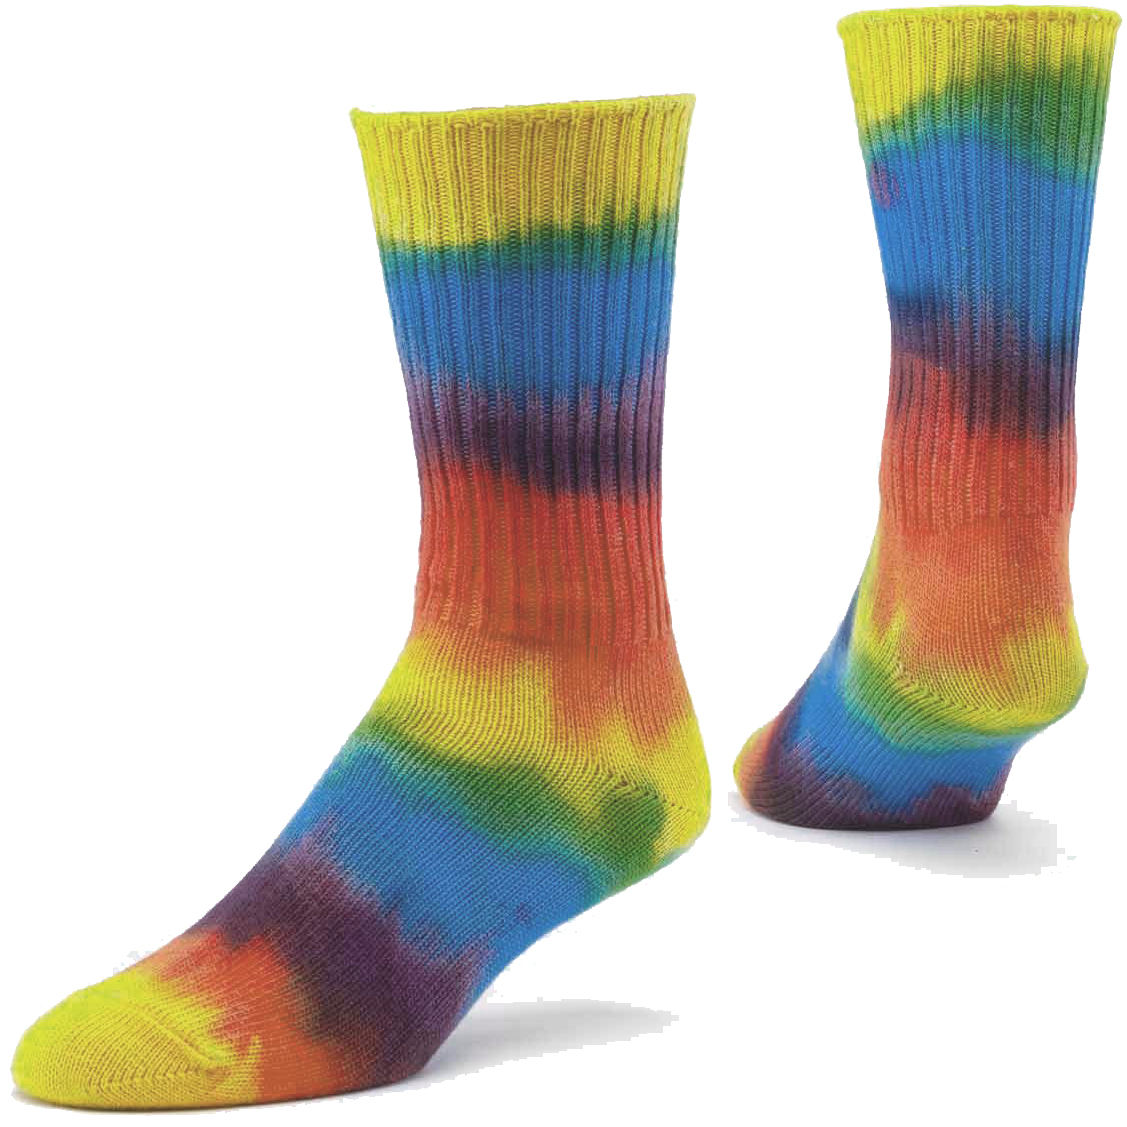 Custom Tie Dye Casual Crew Socks For Women from Manufacturer- Made in Turkey